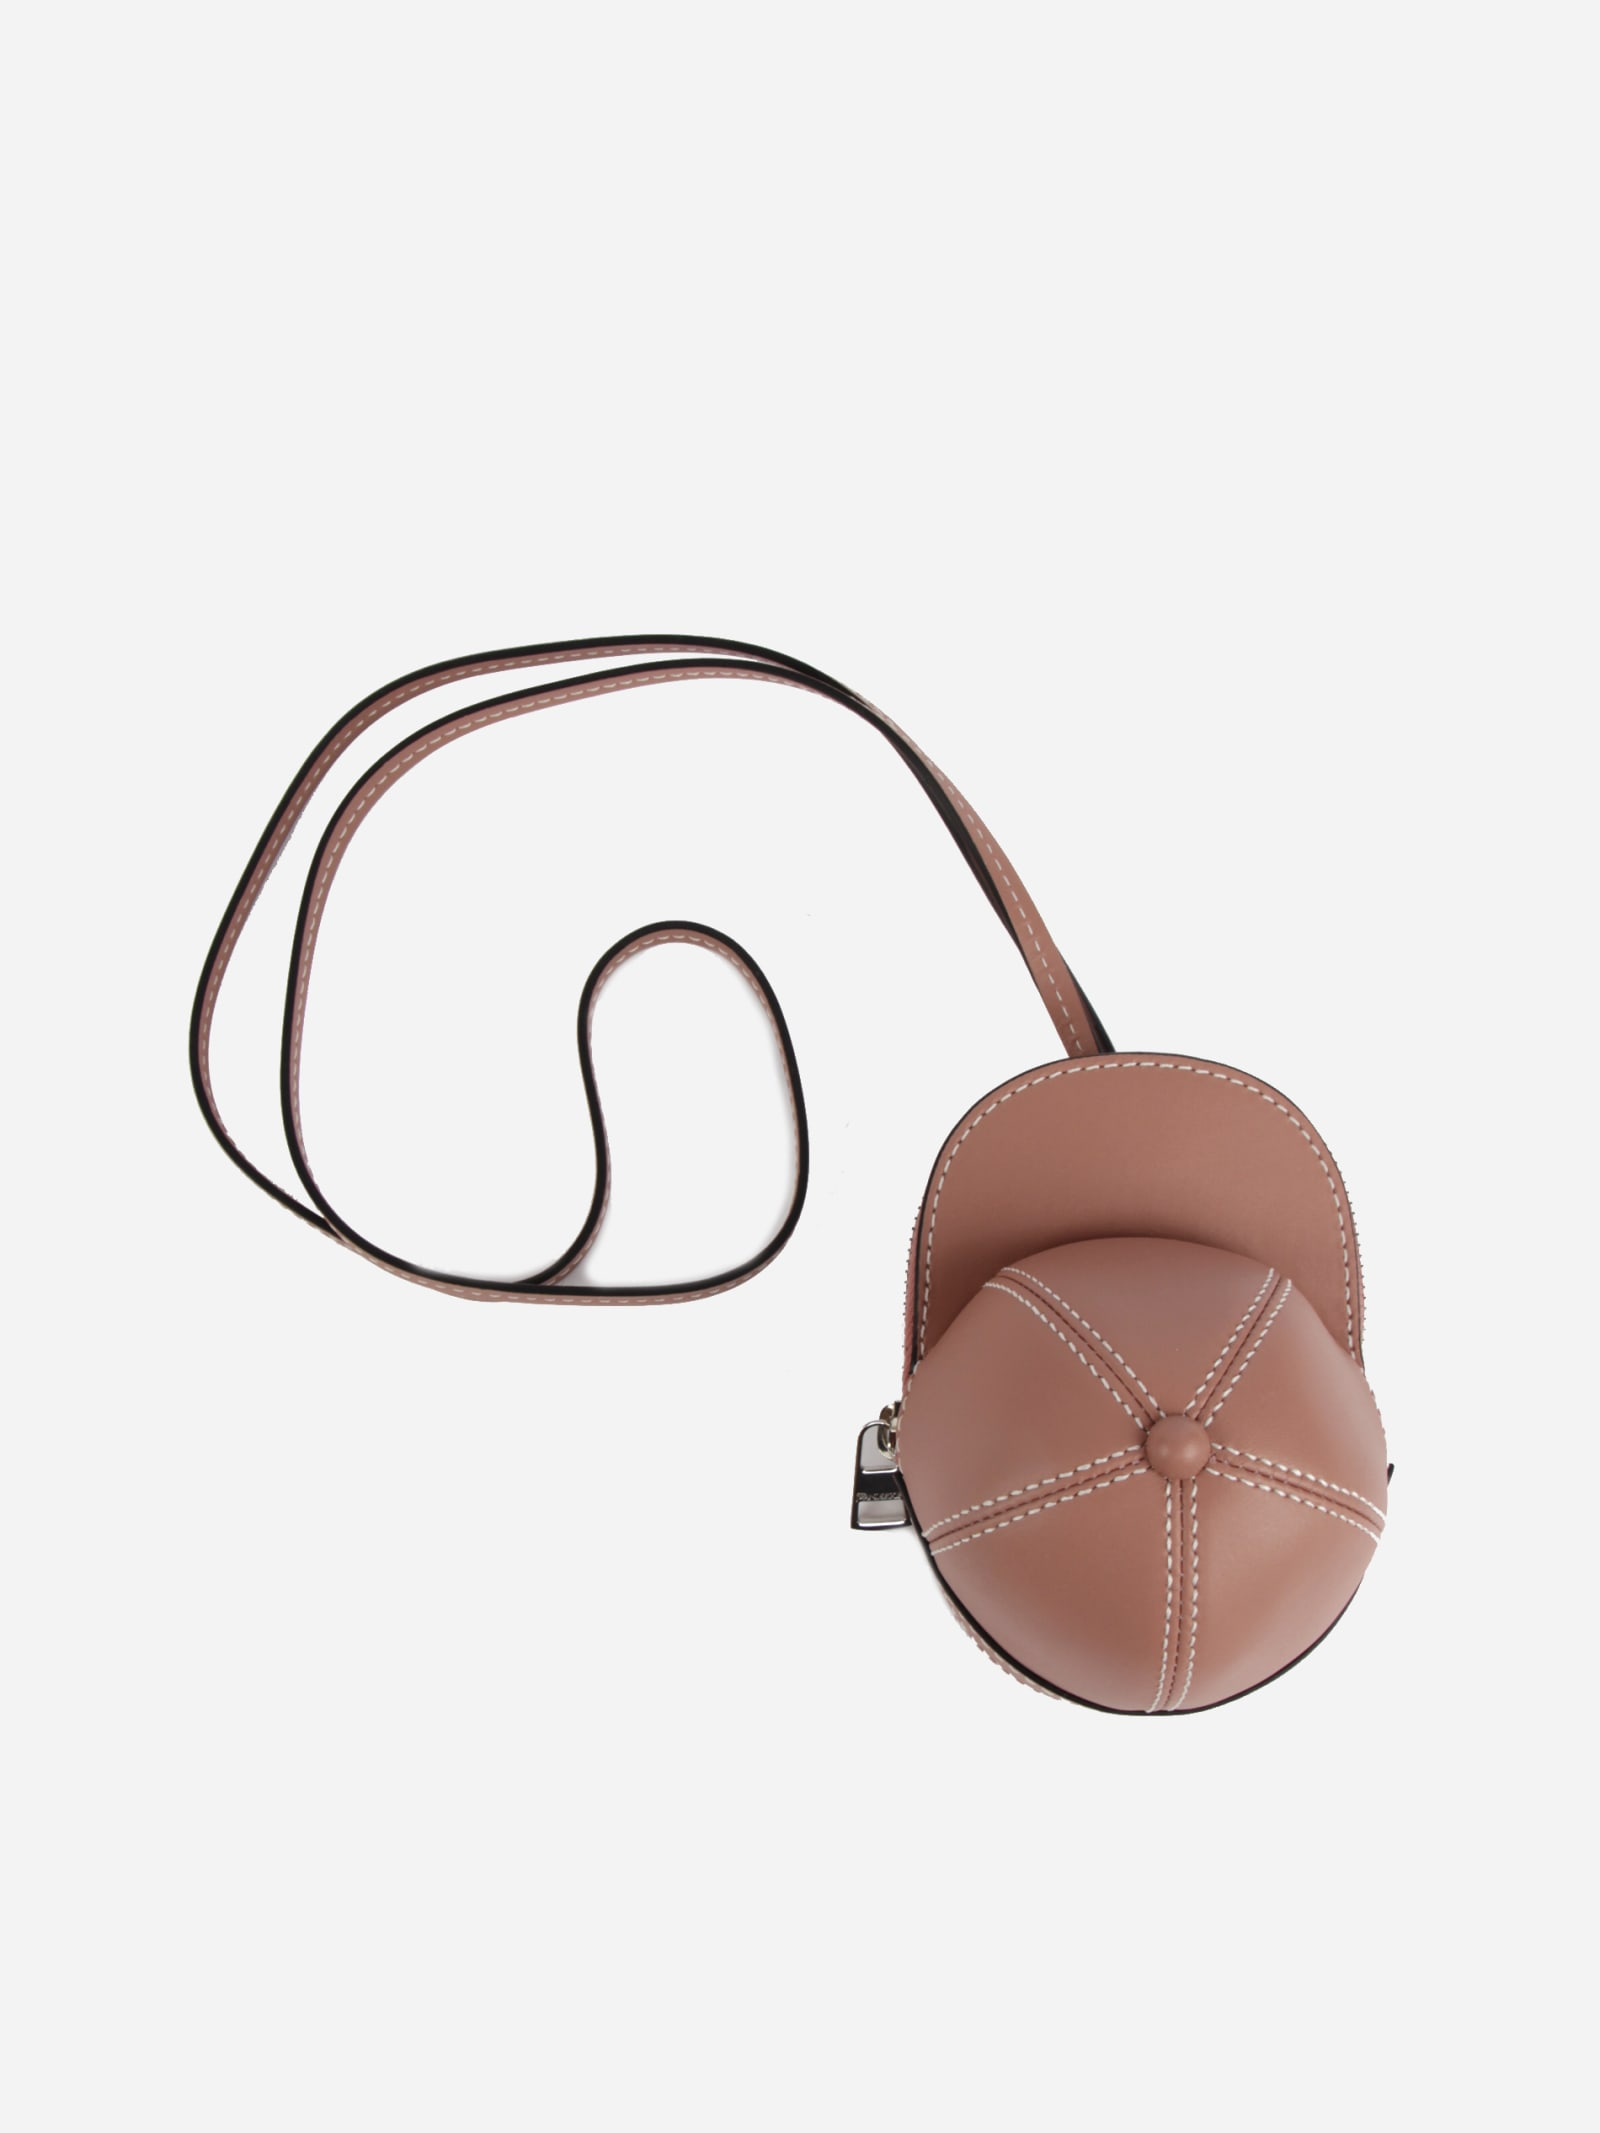 Jw Anderson Nano Cap Leather Bag In Pink